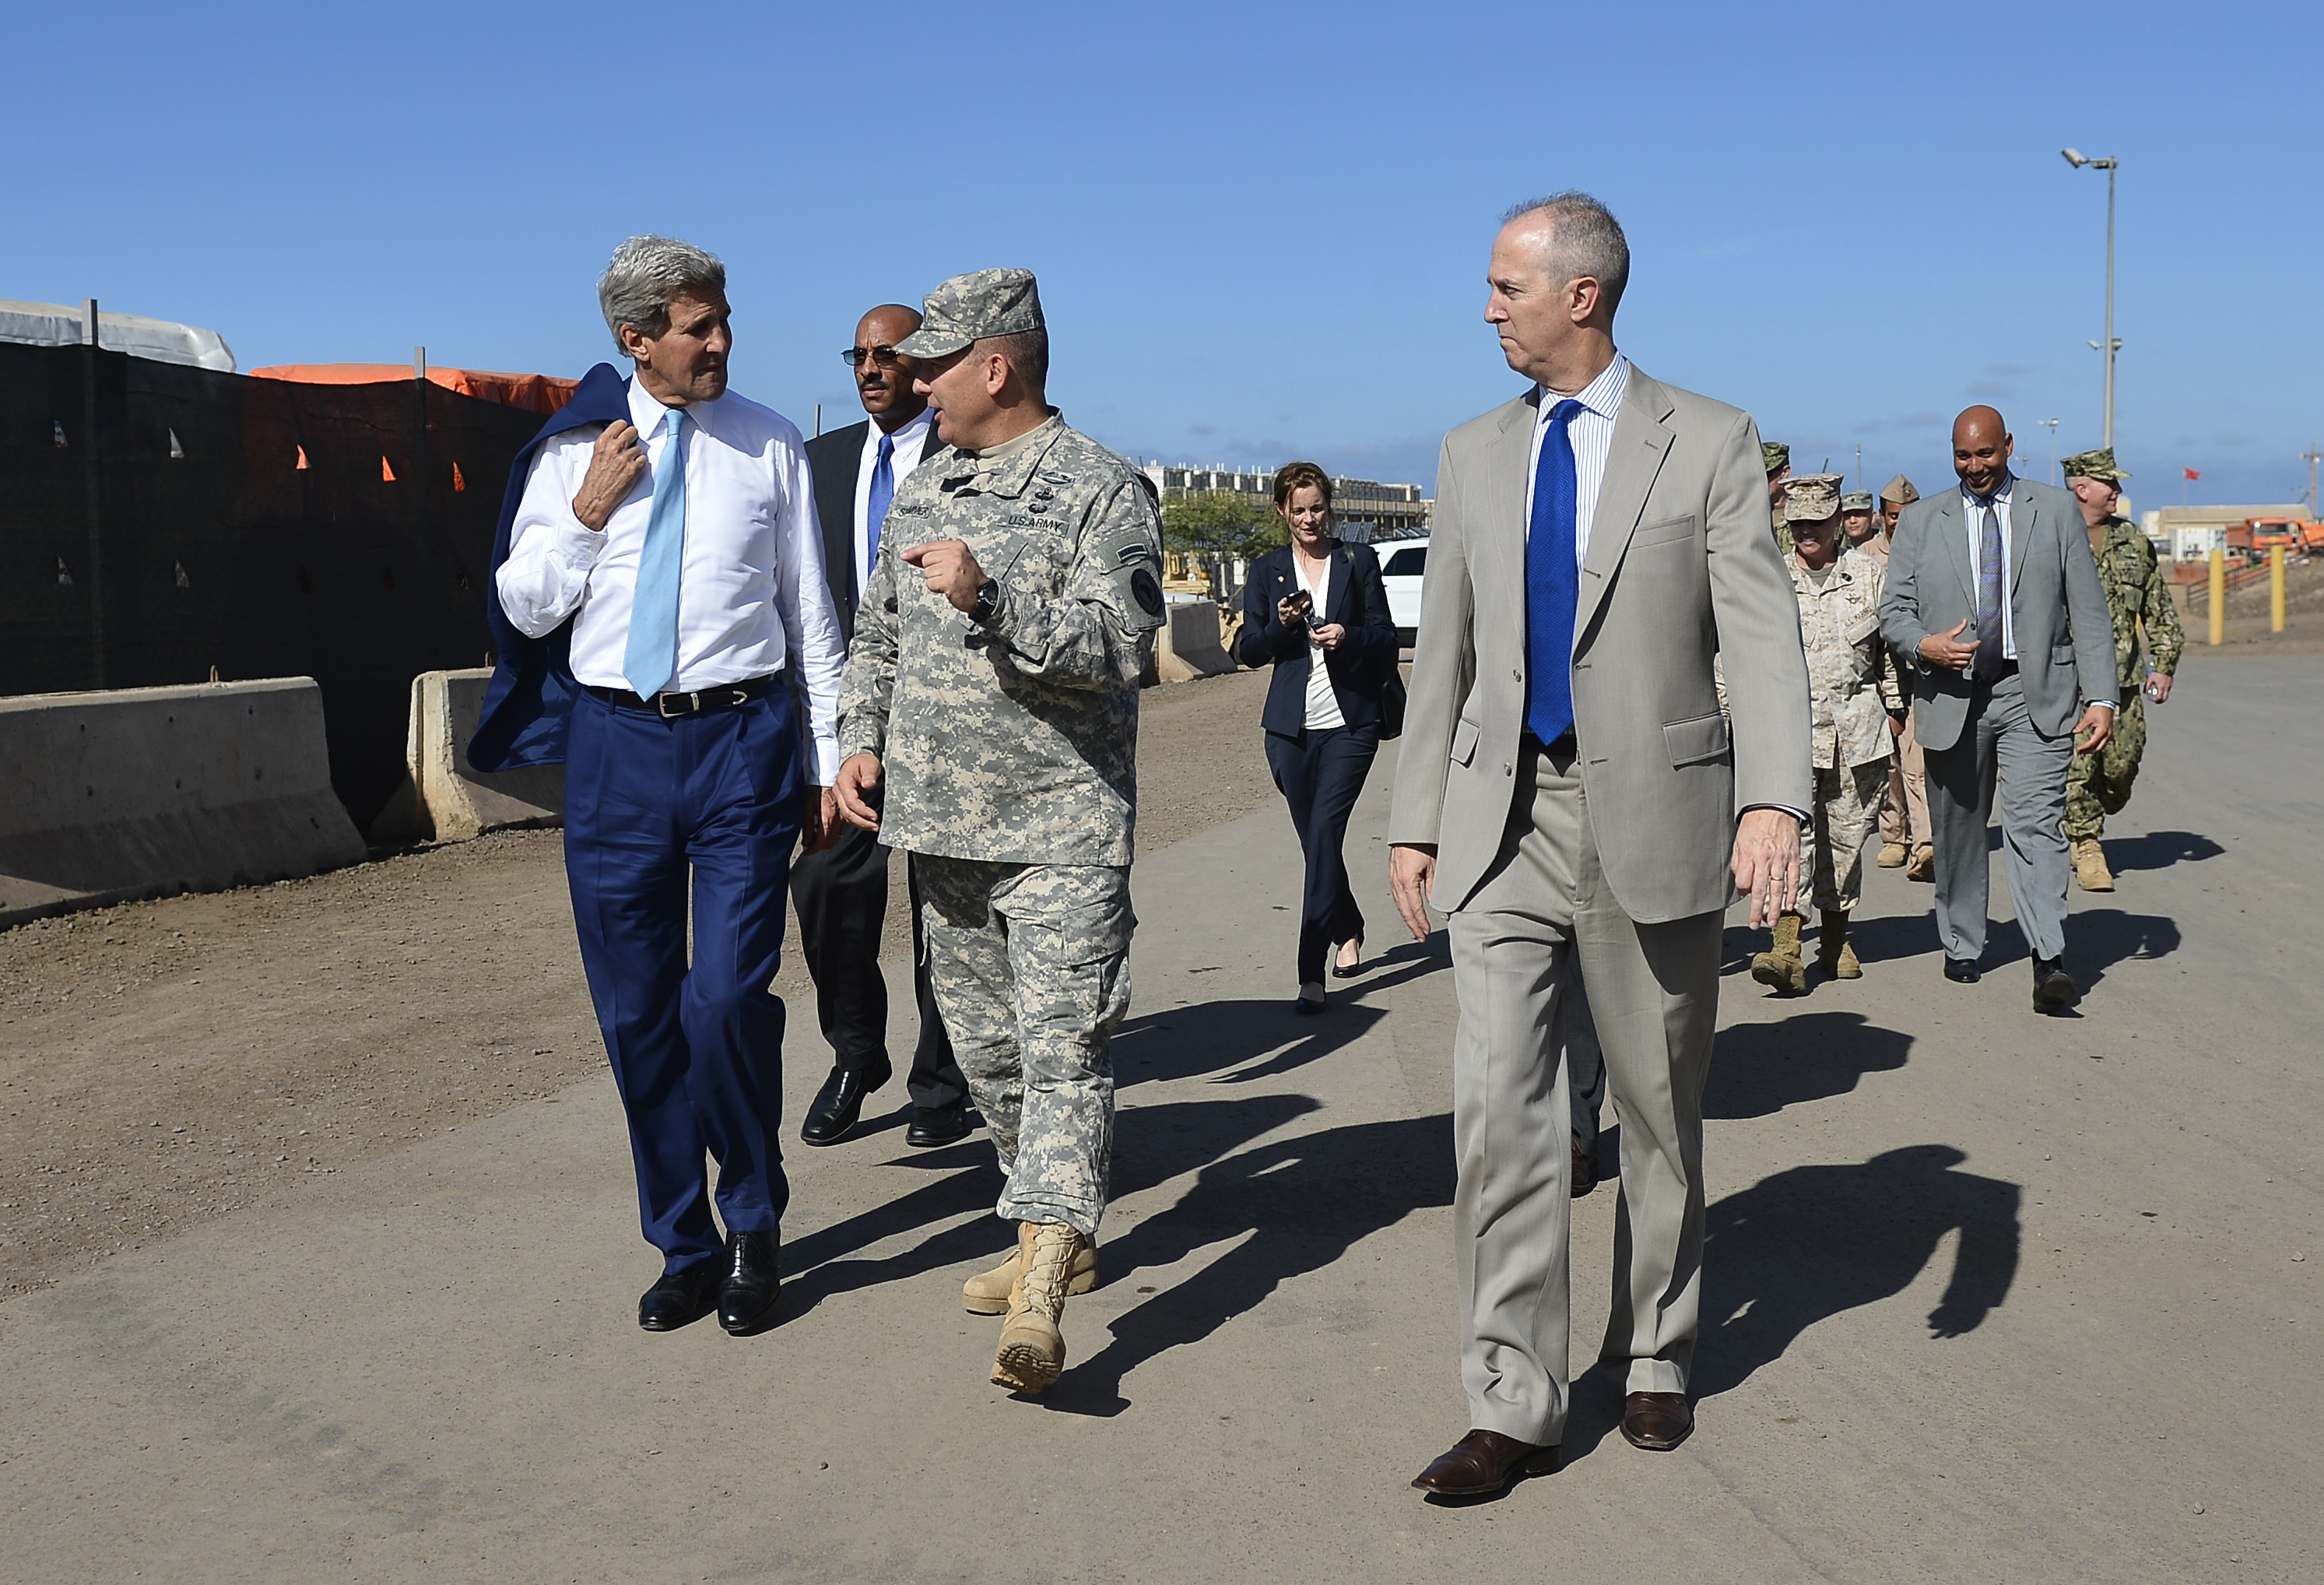 Maj. Gen. Mark R. Stammer, Combined Joint Task Force- Horn of Africa commander, center, and Thomas Kelly, U.S. Ambassador to the Republic of Djibouti, right, give John Kerry, U.S. Secretary of State, a tour at Camp Lemonnier, Djibouti, May 6, 2015. Kerry is the first U.S. Secretary of State to visit the country of Djibouti. (U.S. Air Force photo by Senior Airman Nesha Humes/released)